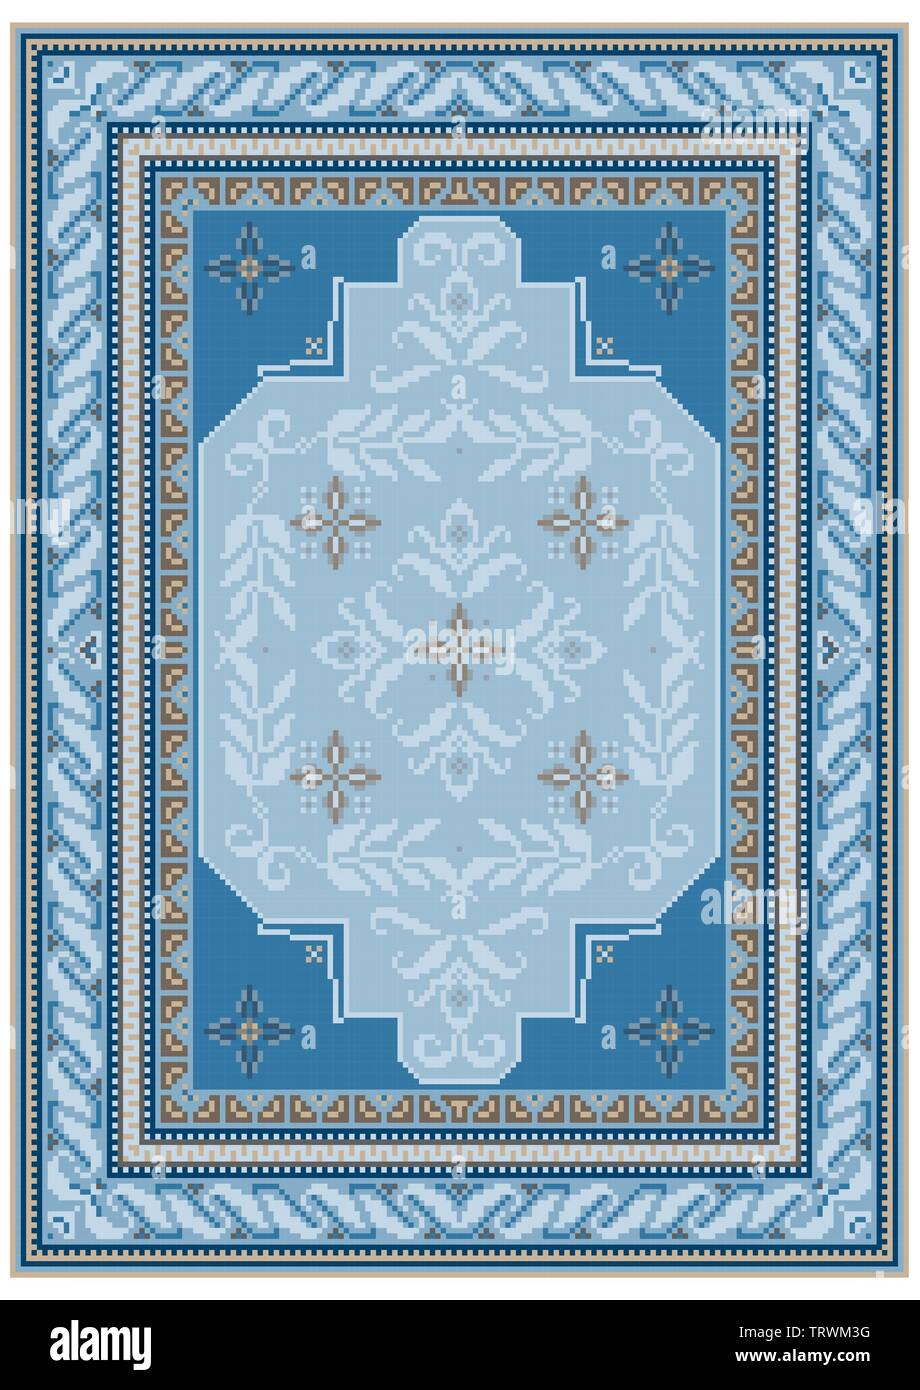 Carpet design with ethnic ornament of blue shades and a floral pattern in bluish tones in the on the middle - Stock Image